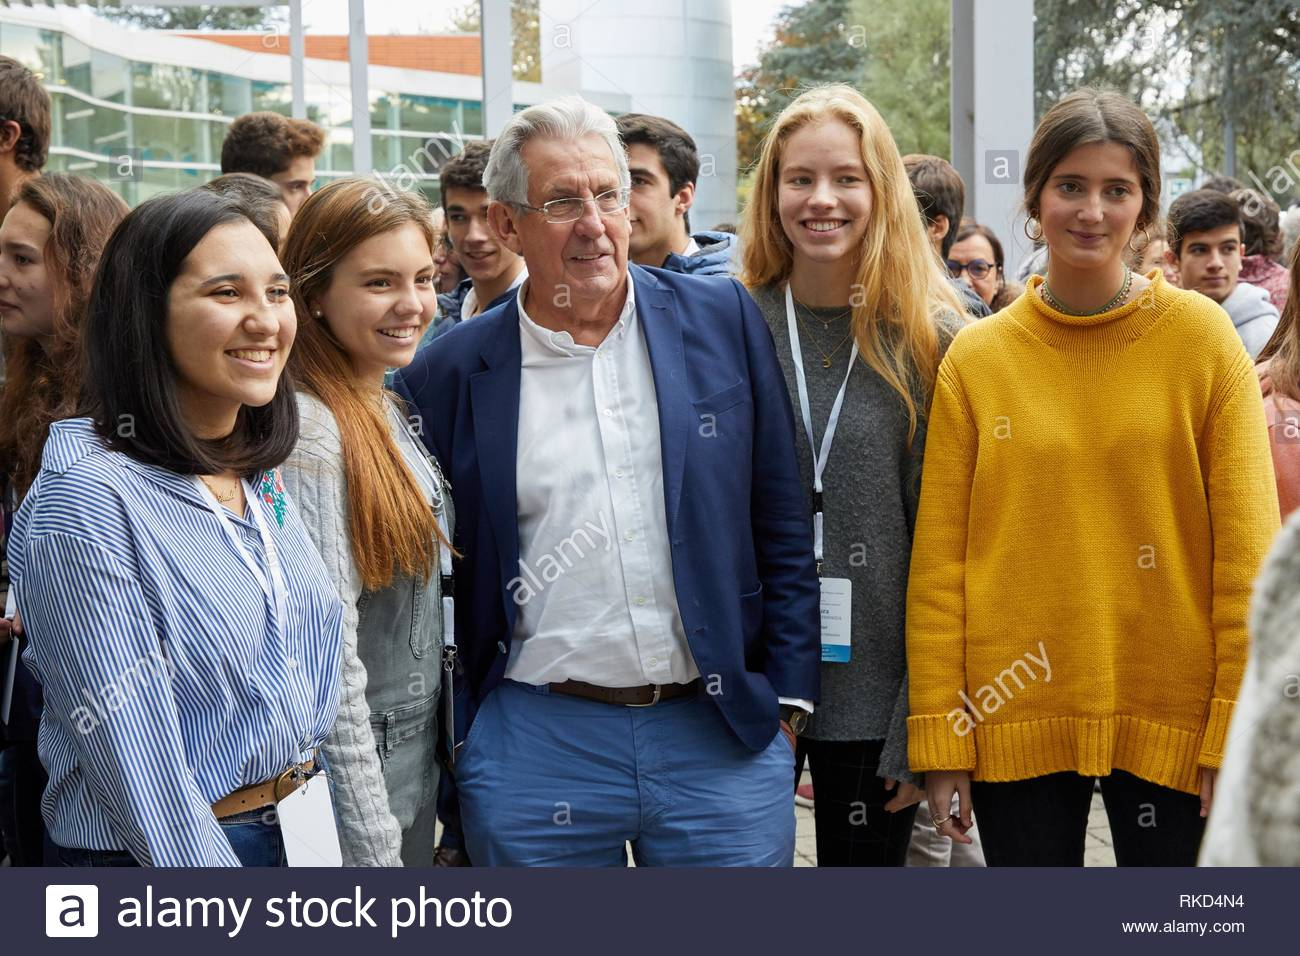 Pedro Miguel Echenique Landiribar (Professor of Condensed Matter Physics from the University of the Basque Country).10th edition of 'Top @ - Stock Image